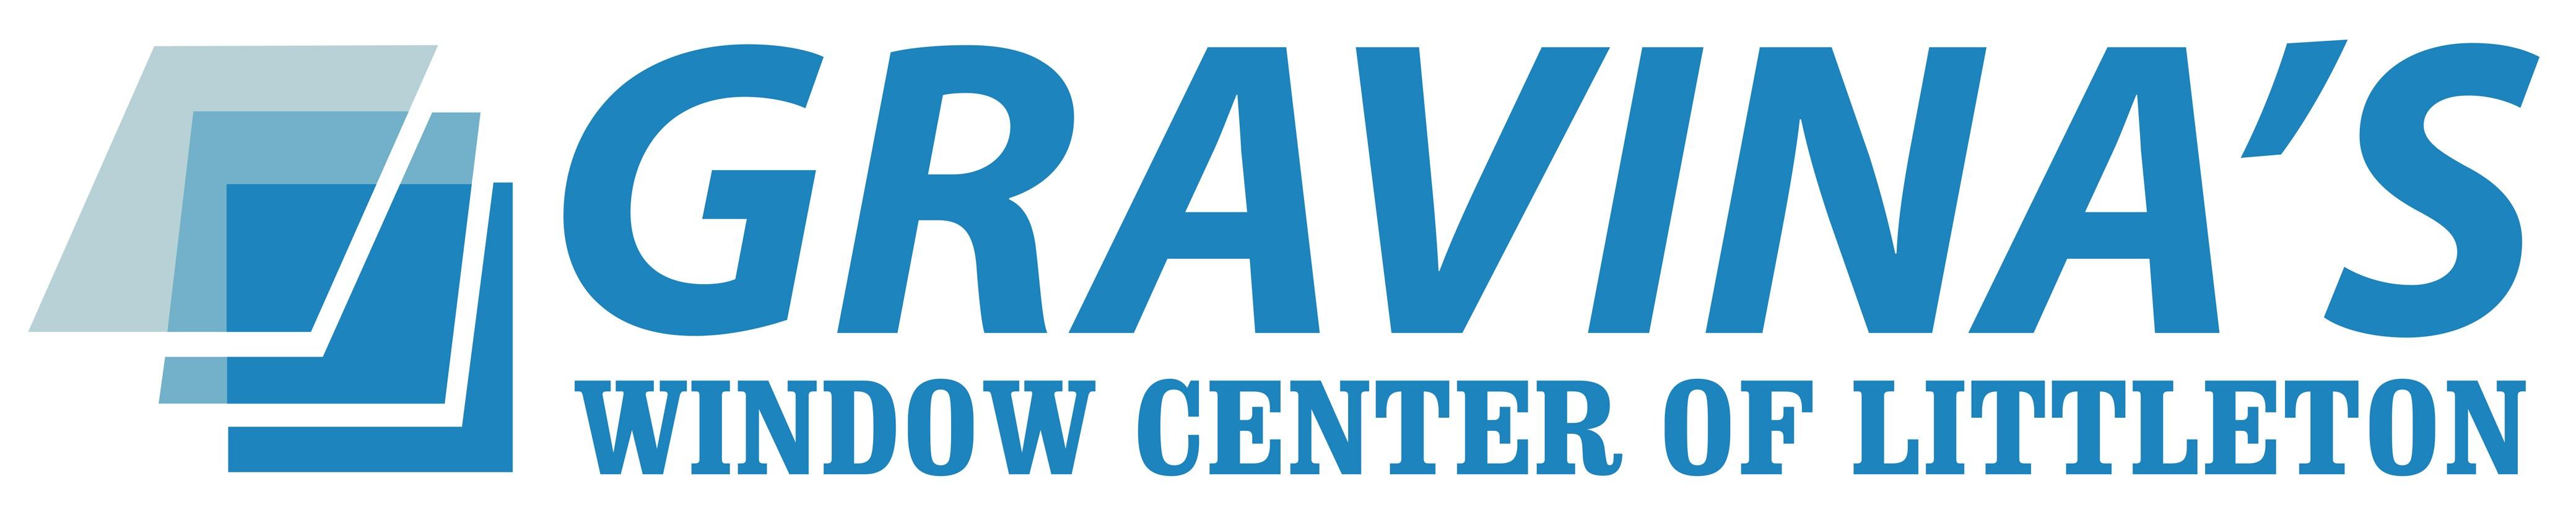 Gravina's Window Center of Littleton logo